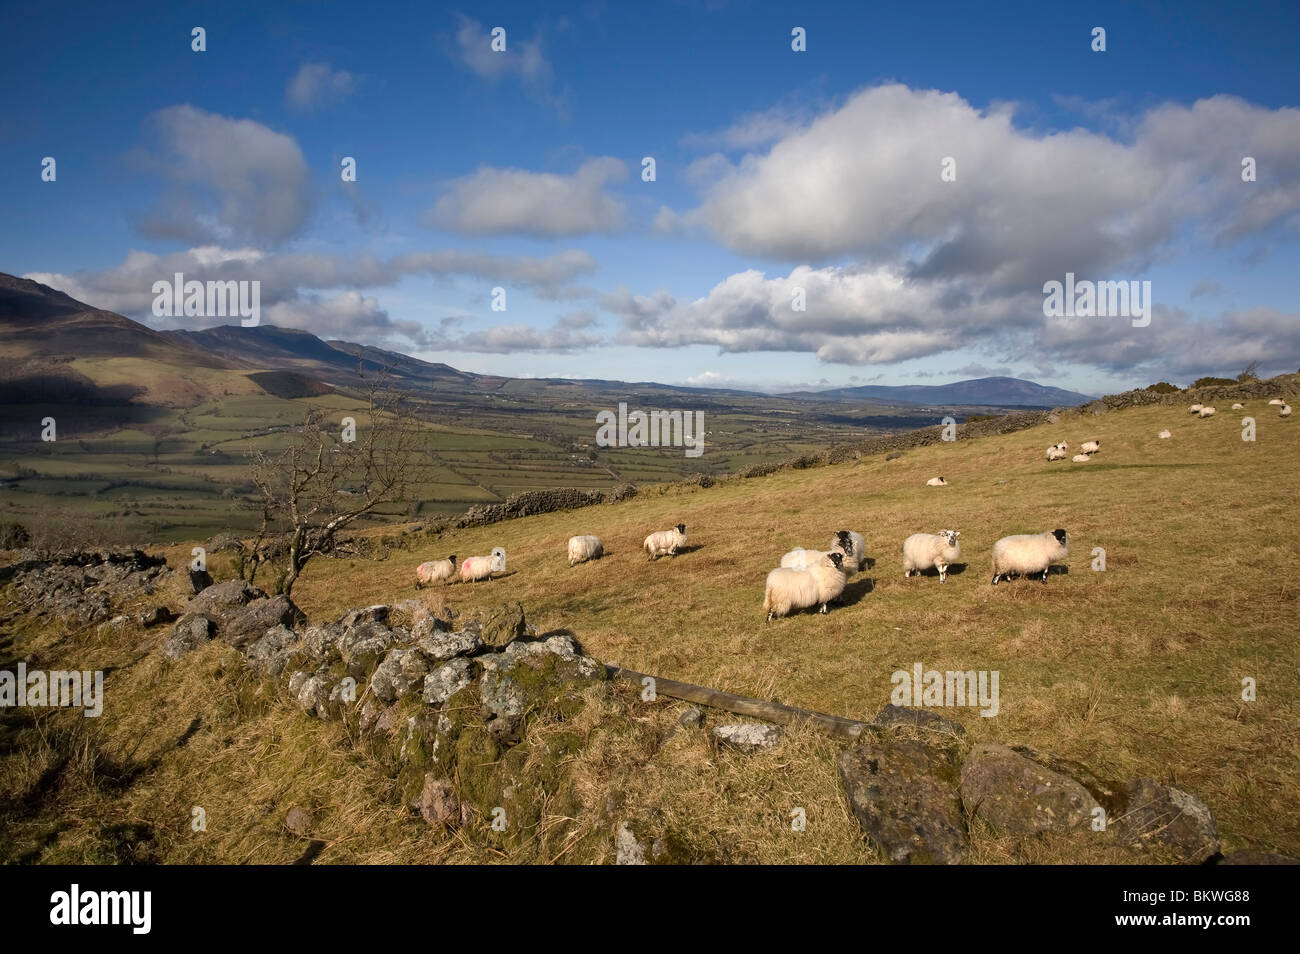 Sheep on Croaghaun, Overlooking the Comeragh Mountains, County Waterford, Ireland - Stock Image